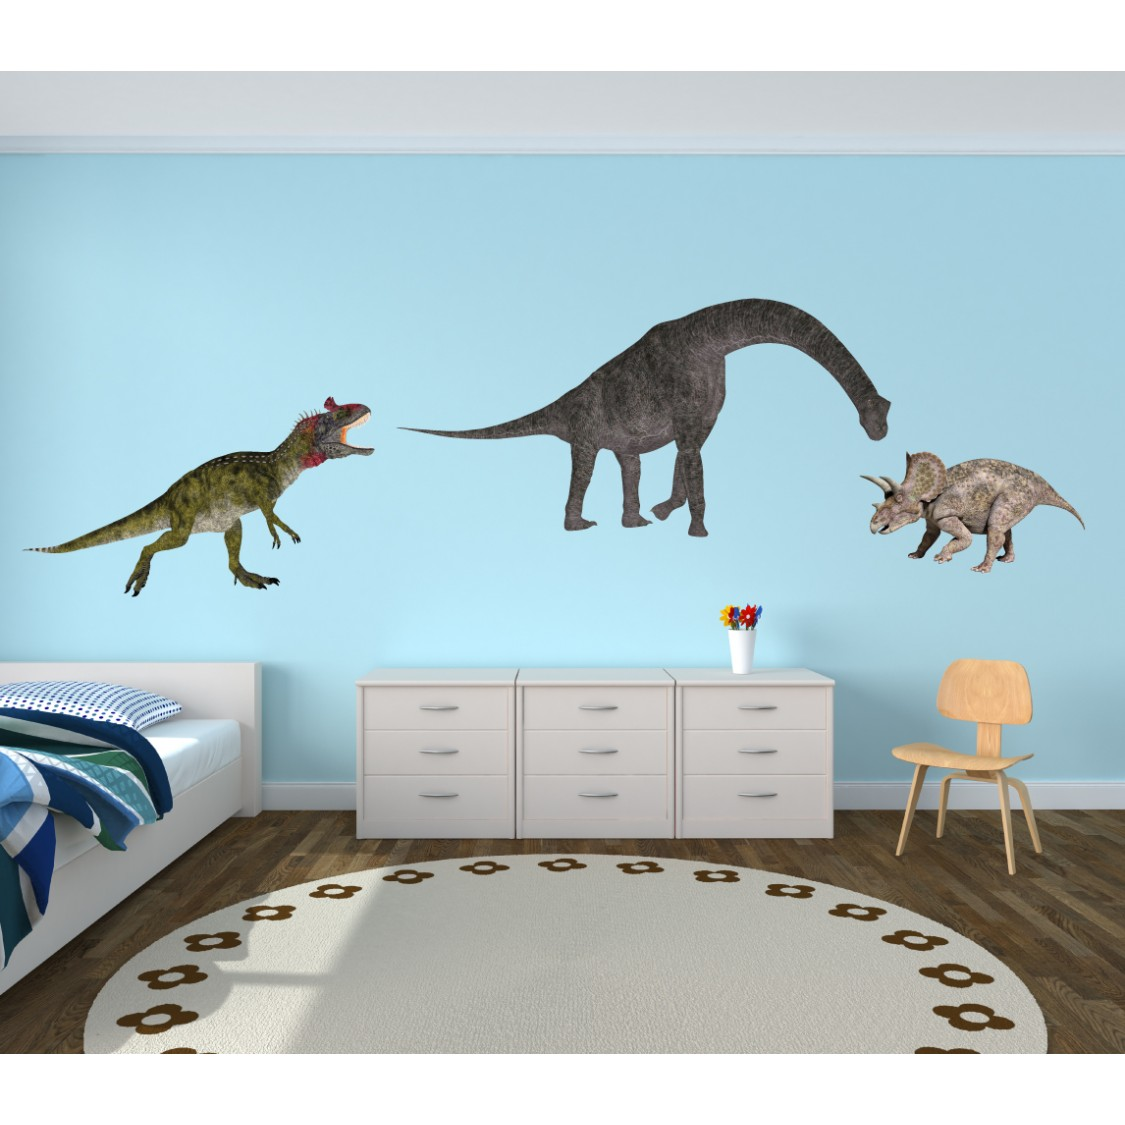 Realistic Large Wall Decal With Dinosaur Wall Decor For Kids